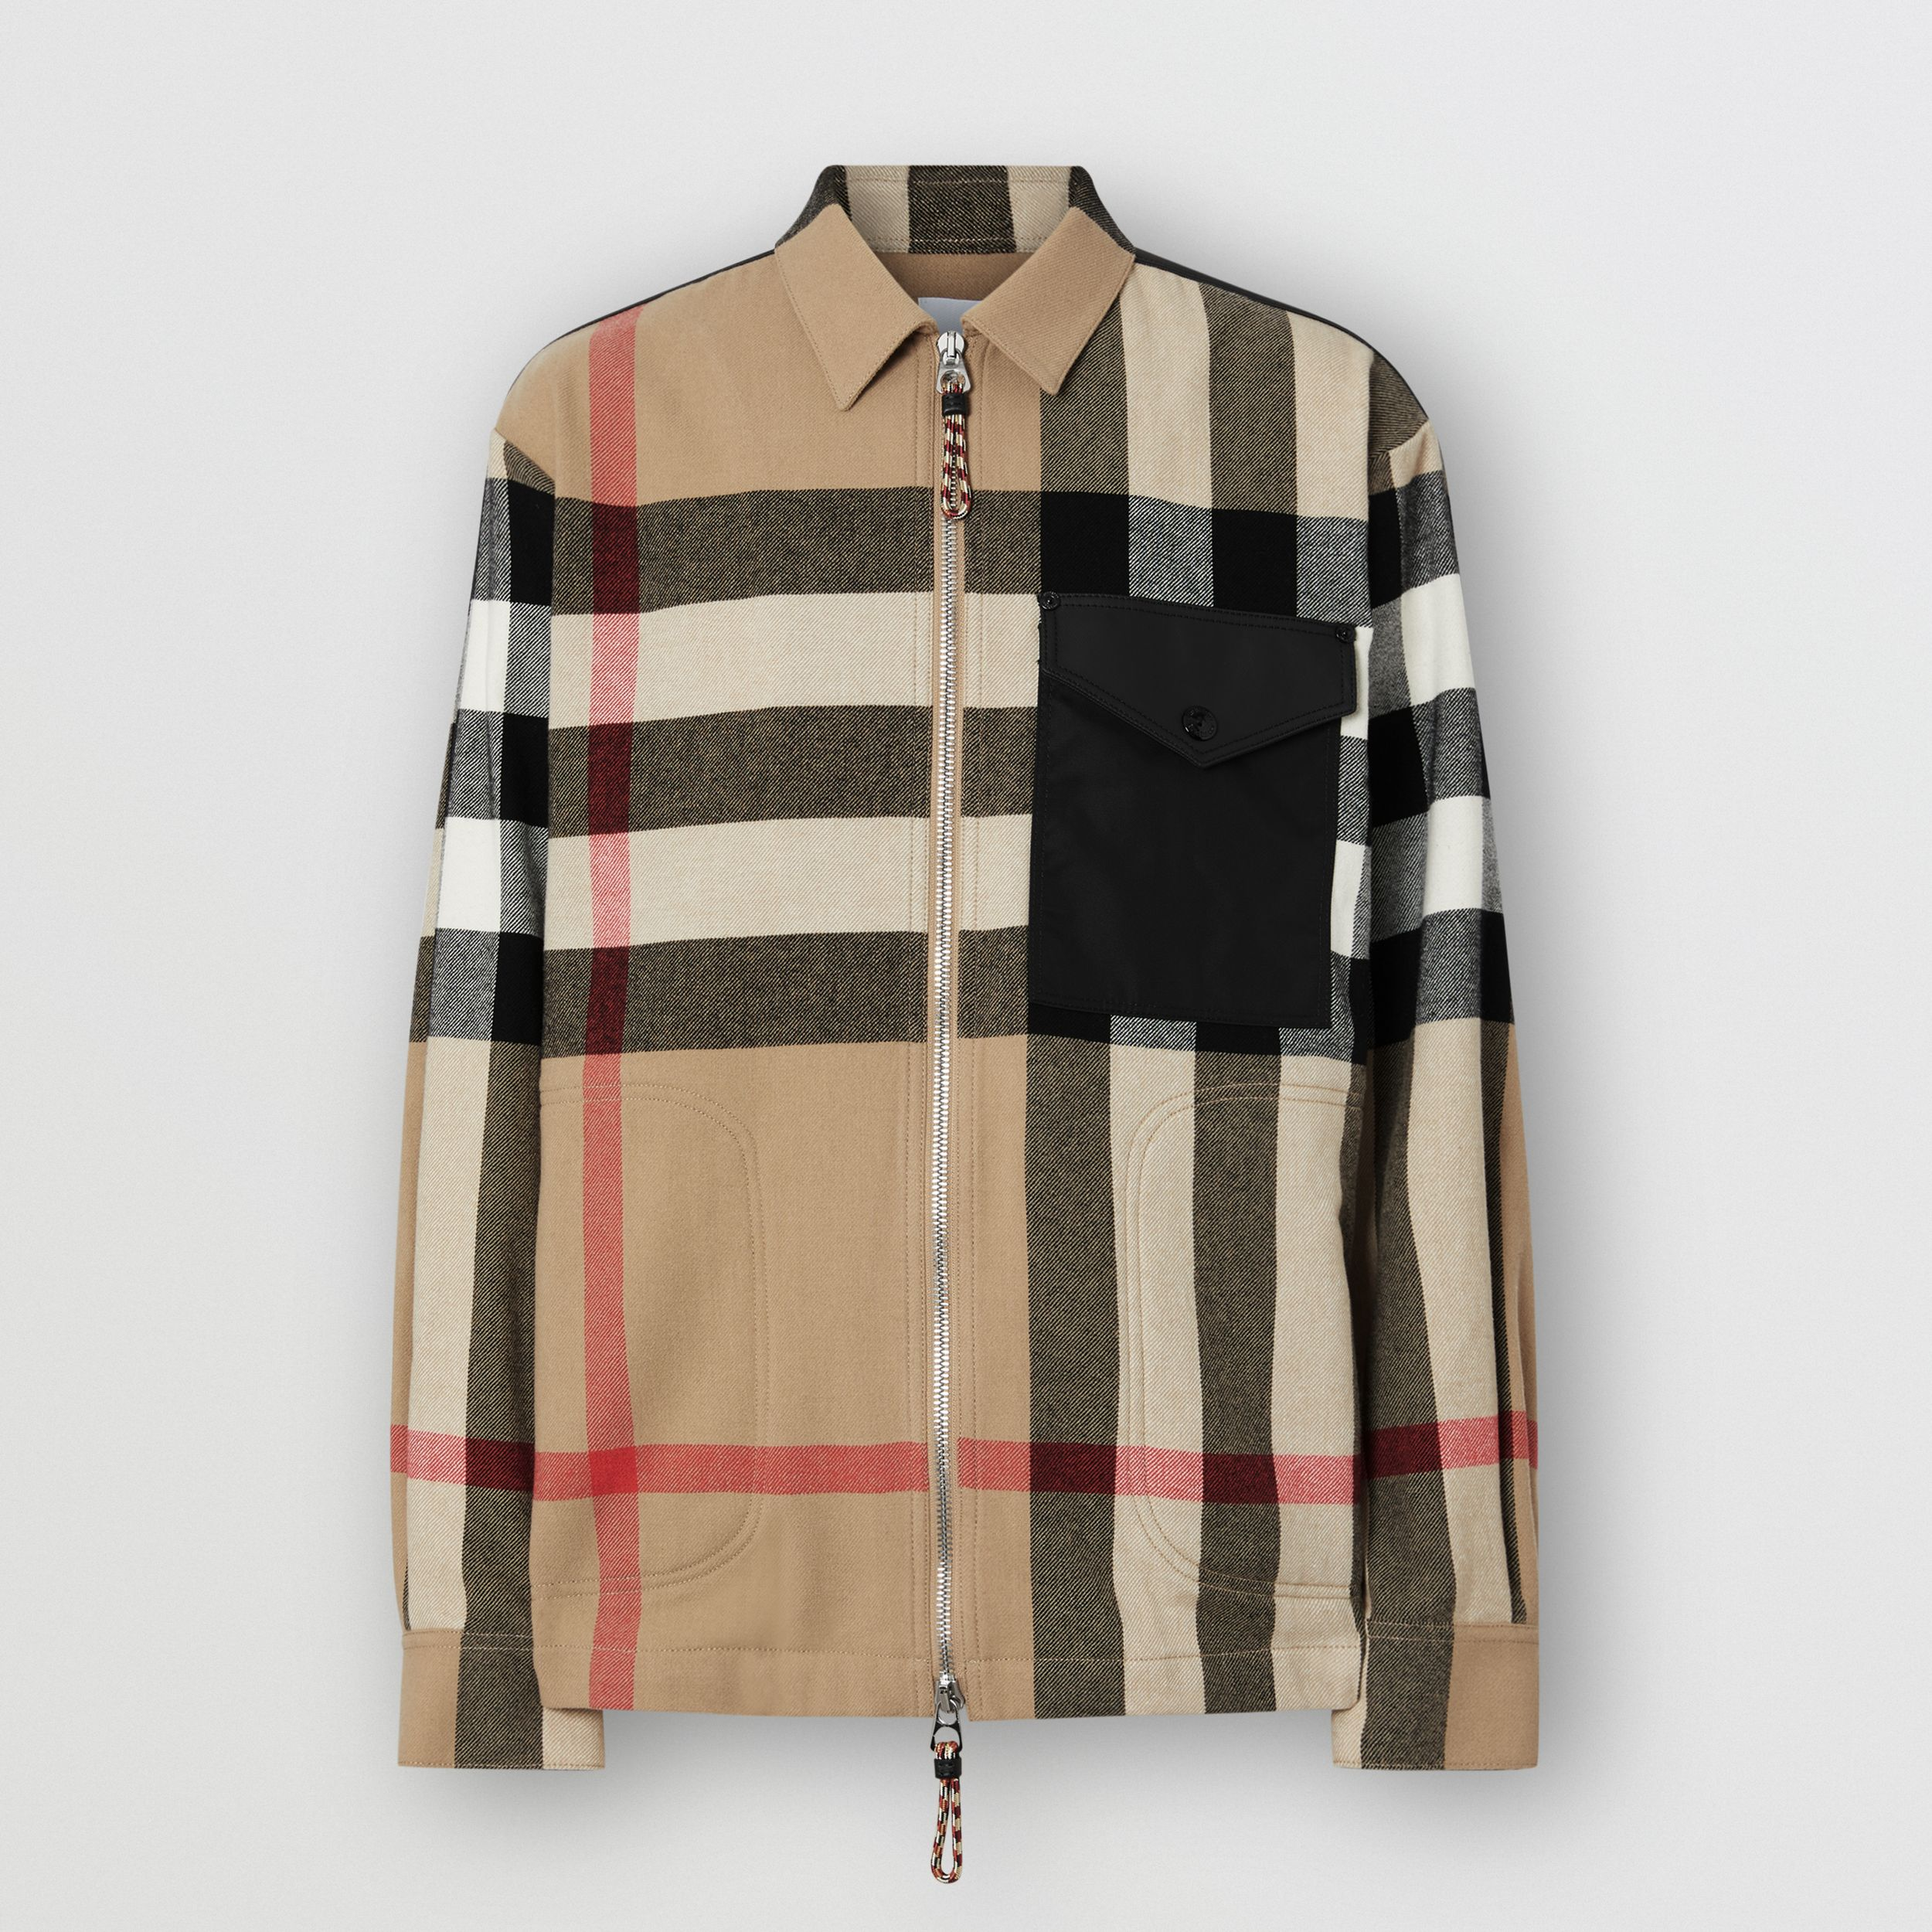 Contrast Panel Check Wool Cotton Shirt in Archive Beige - Men | Burberry Canada - 4